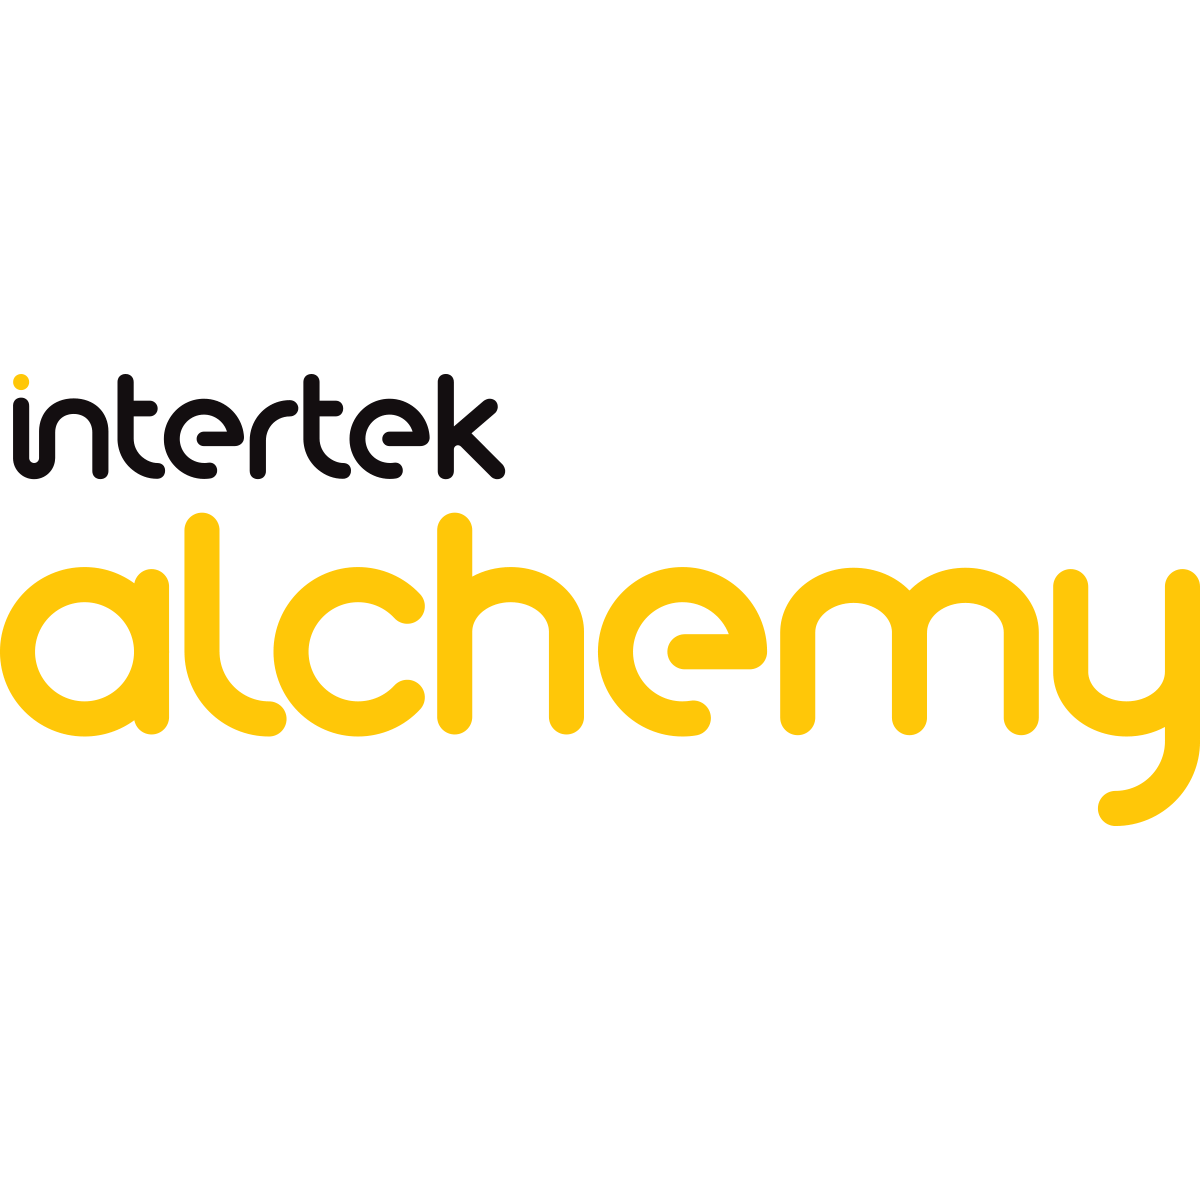 Intertek Alchemy logo